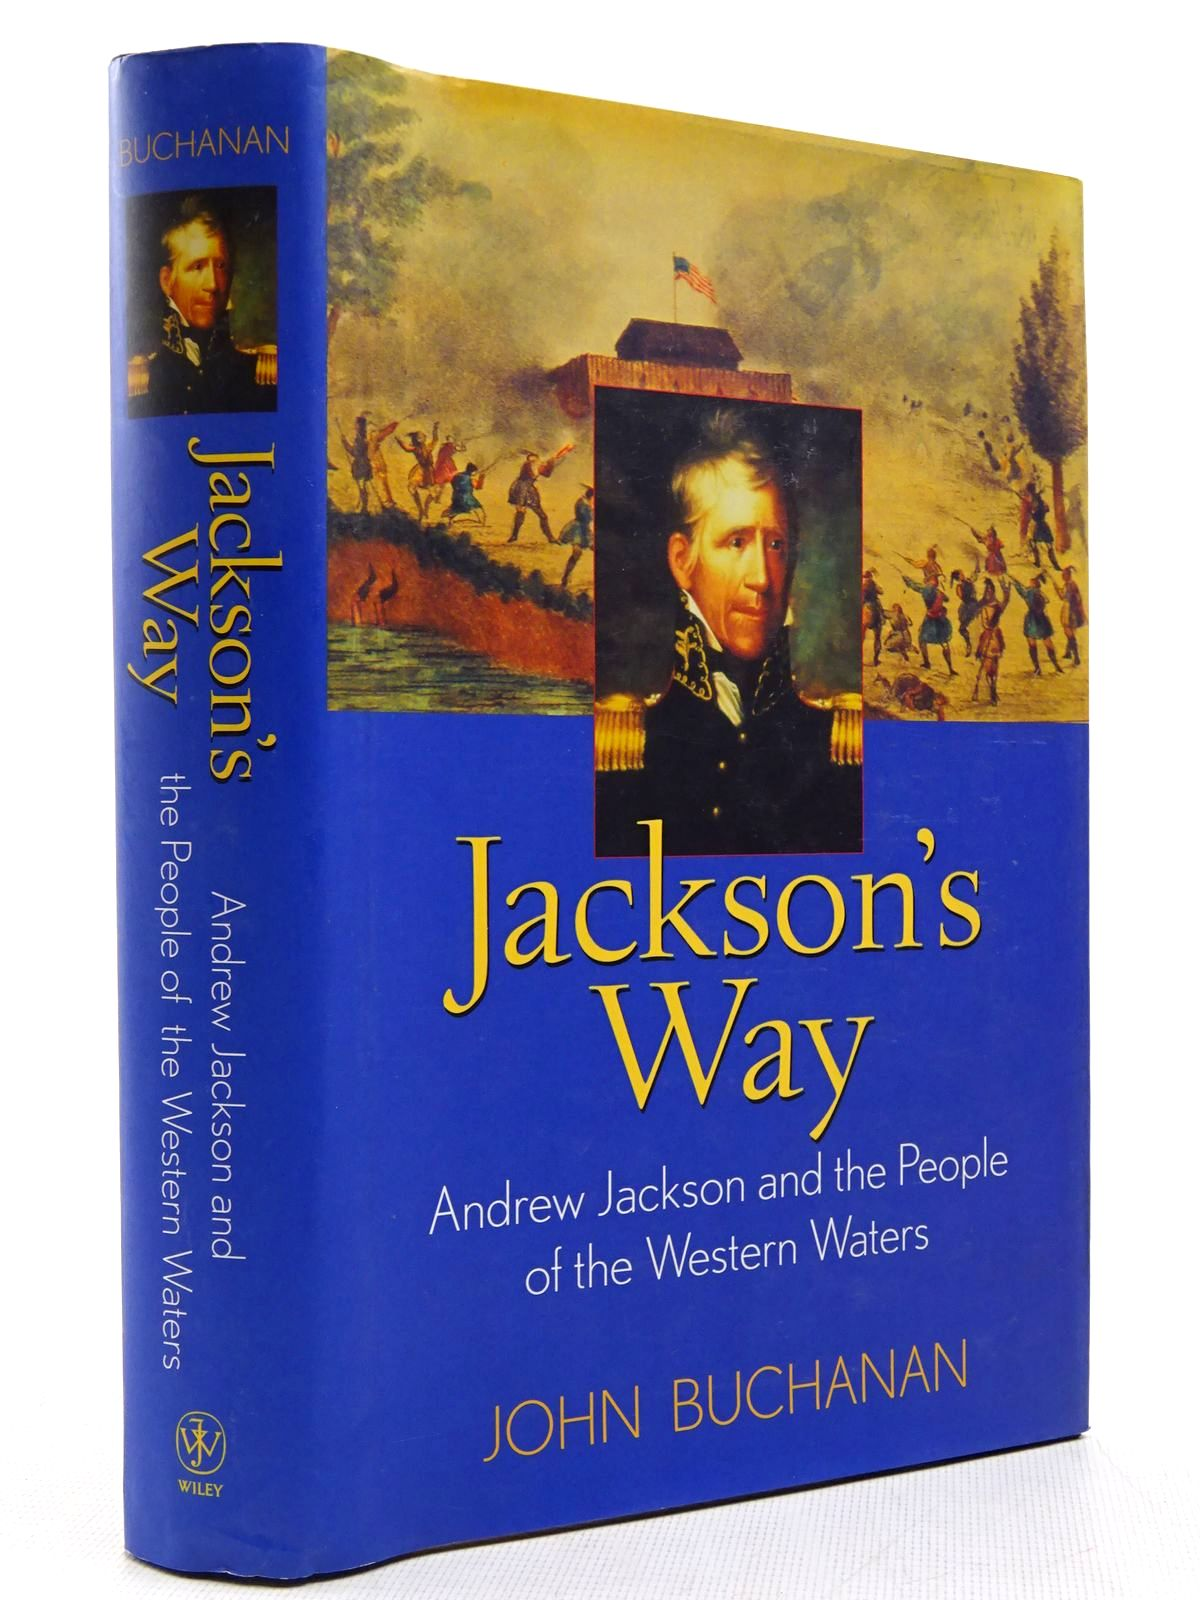 Photo of JACKSON'S WAY ANDREW JACKSON AND THE PEOPLE OF THE WESTERN WATERS written by Buchanan, John published by John Wiley & Sons (STOCK CODE: 2128914)  for sale by Stella & Rose's Books